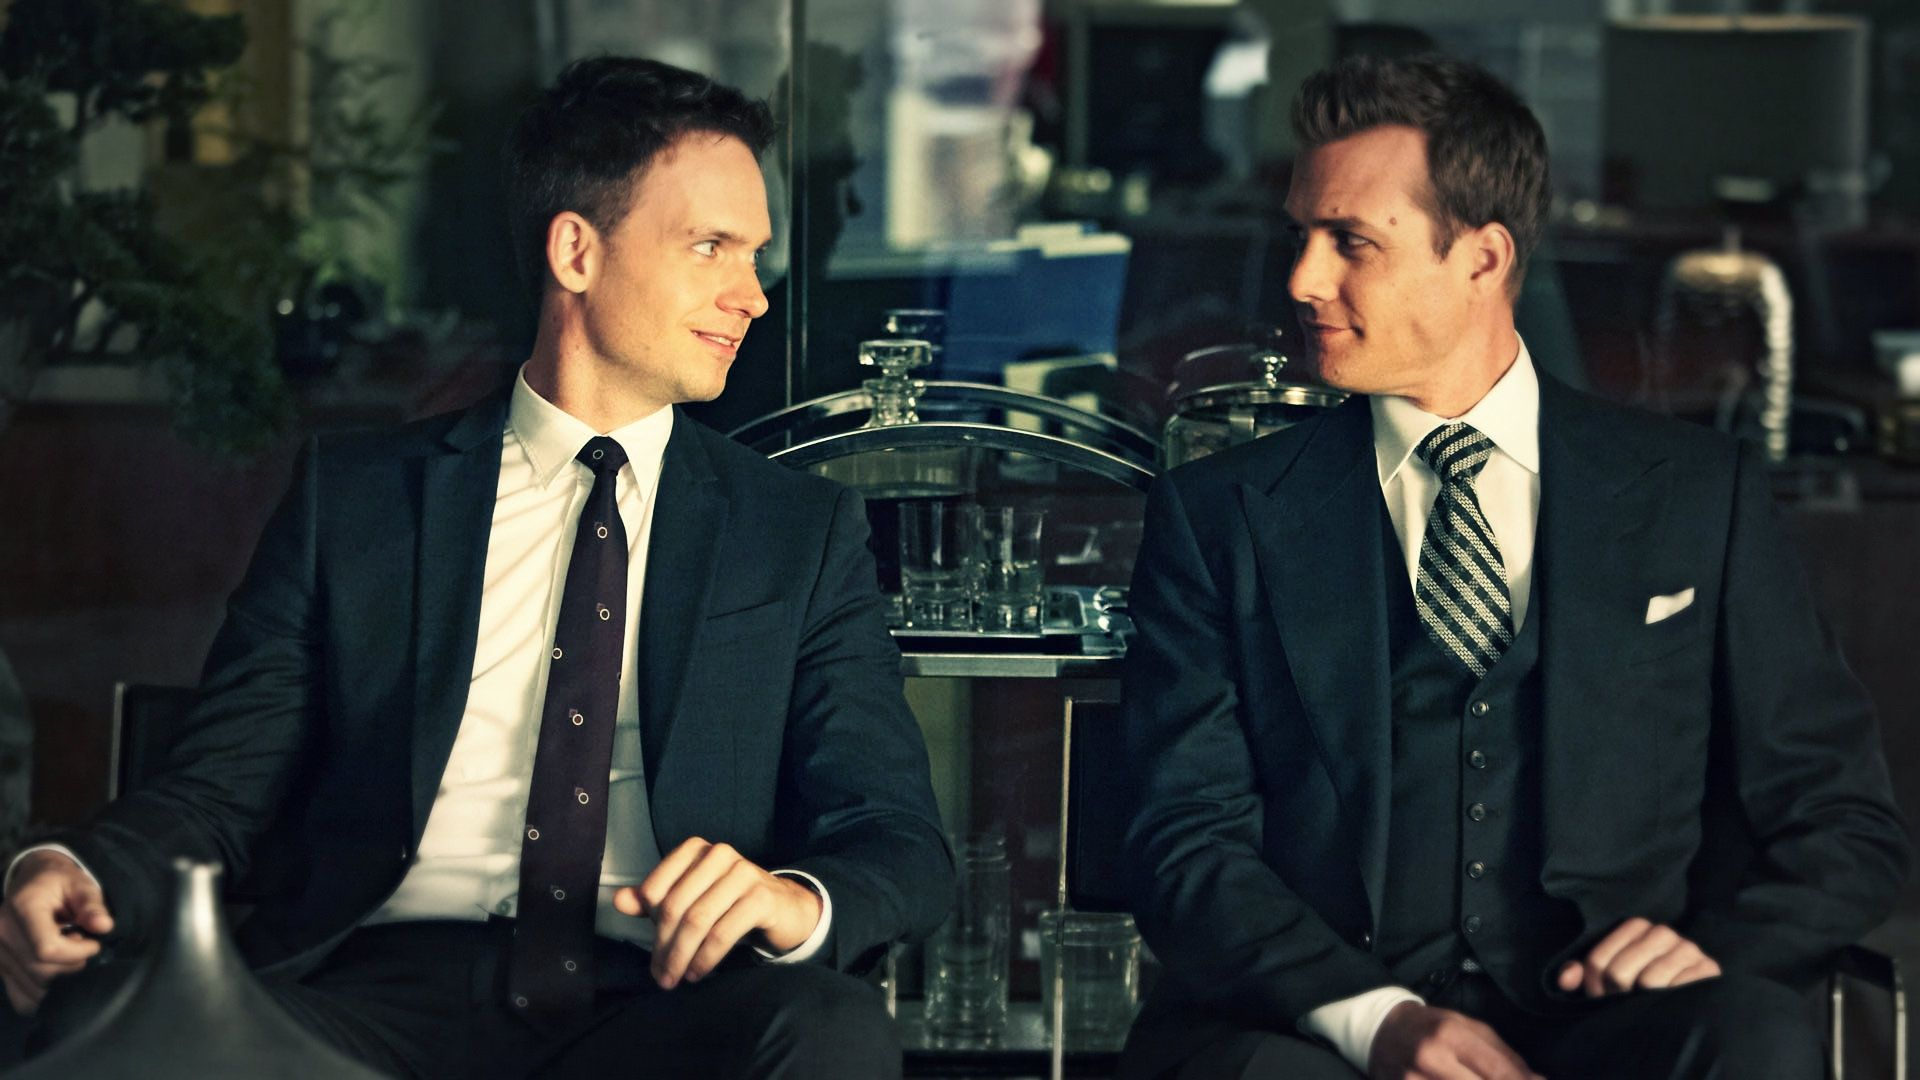 suits hd wallpapers suits tv series wallpapers pinterest suits tv series suits series suits usa suits hd wallpapers suits tv series